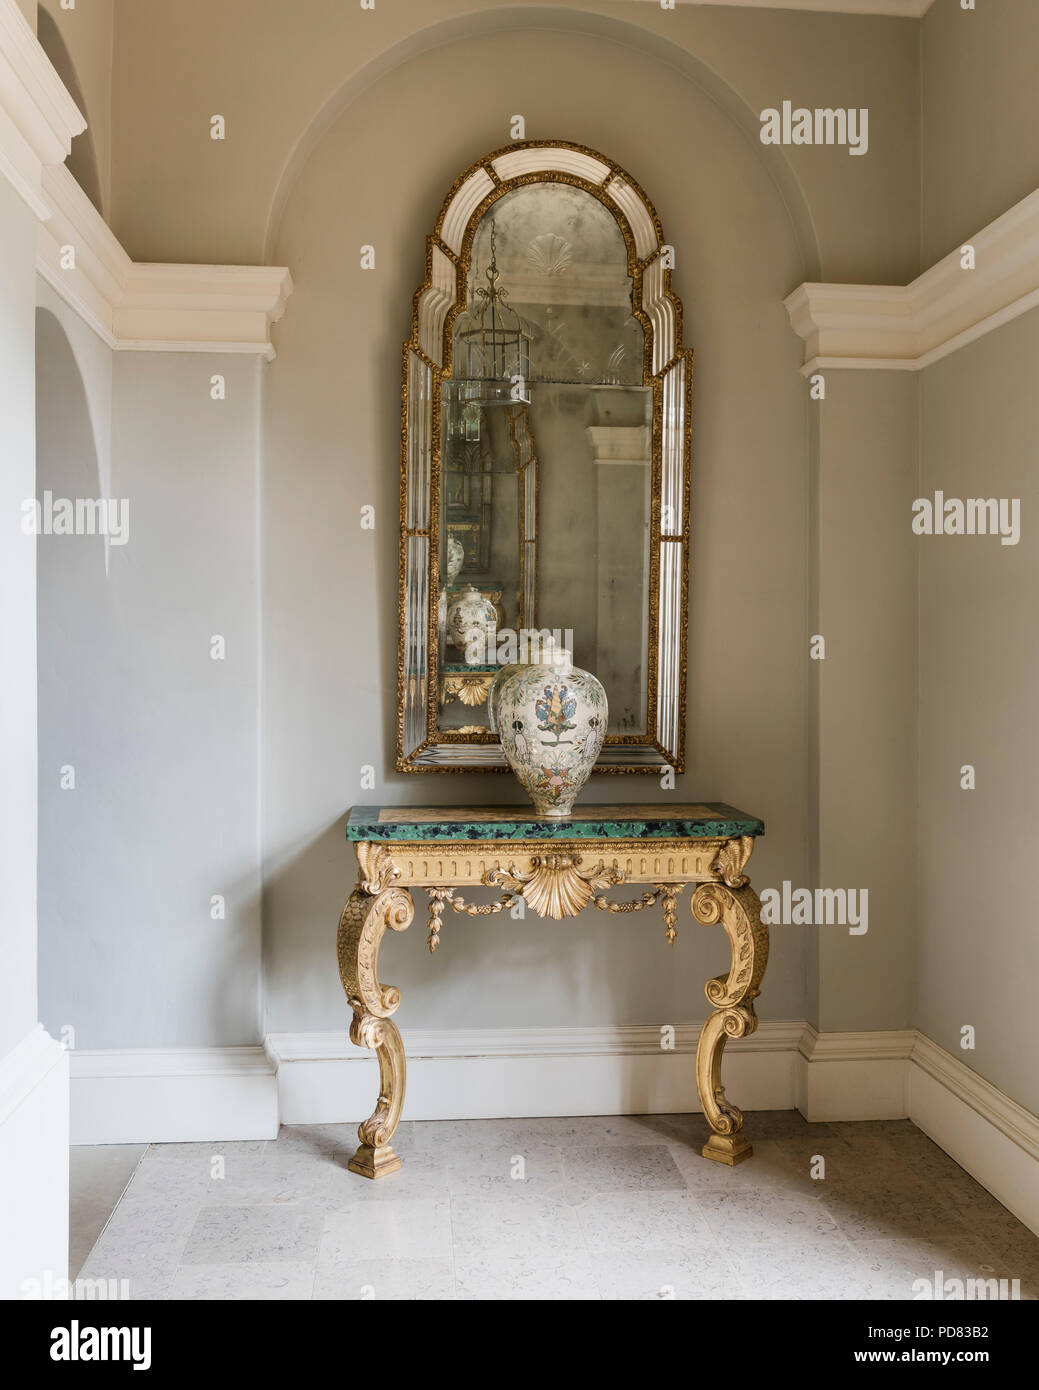 Antique French Gilt Wood and Marble Console Table under gilt framed mirror Stock Photo